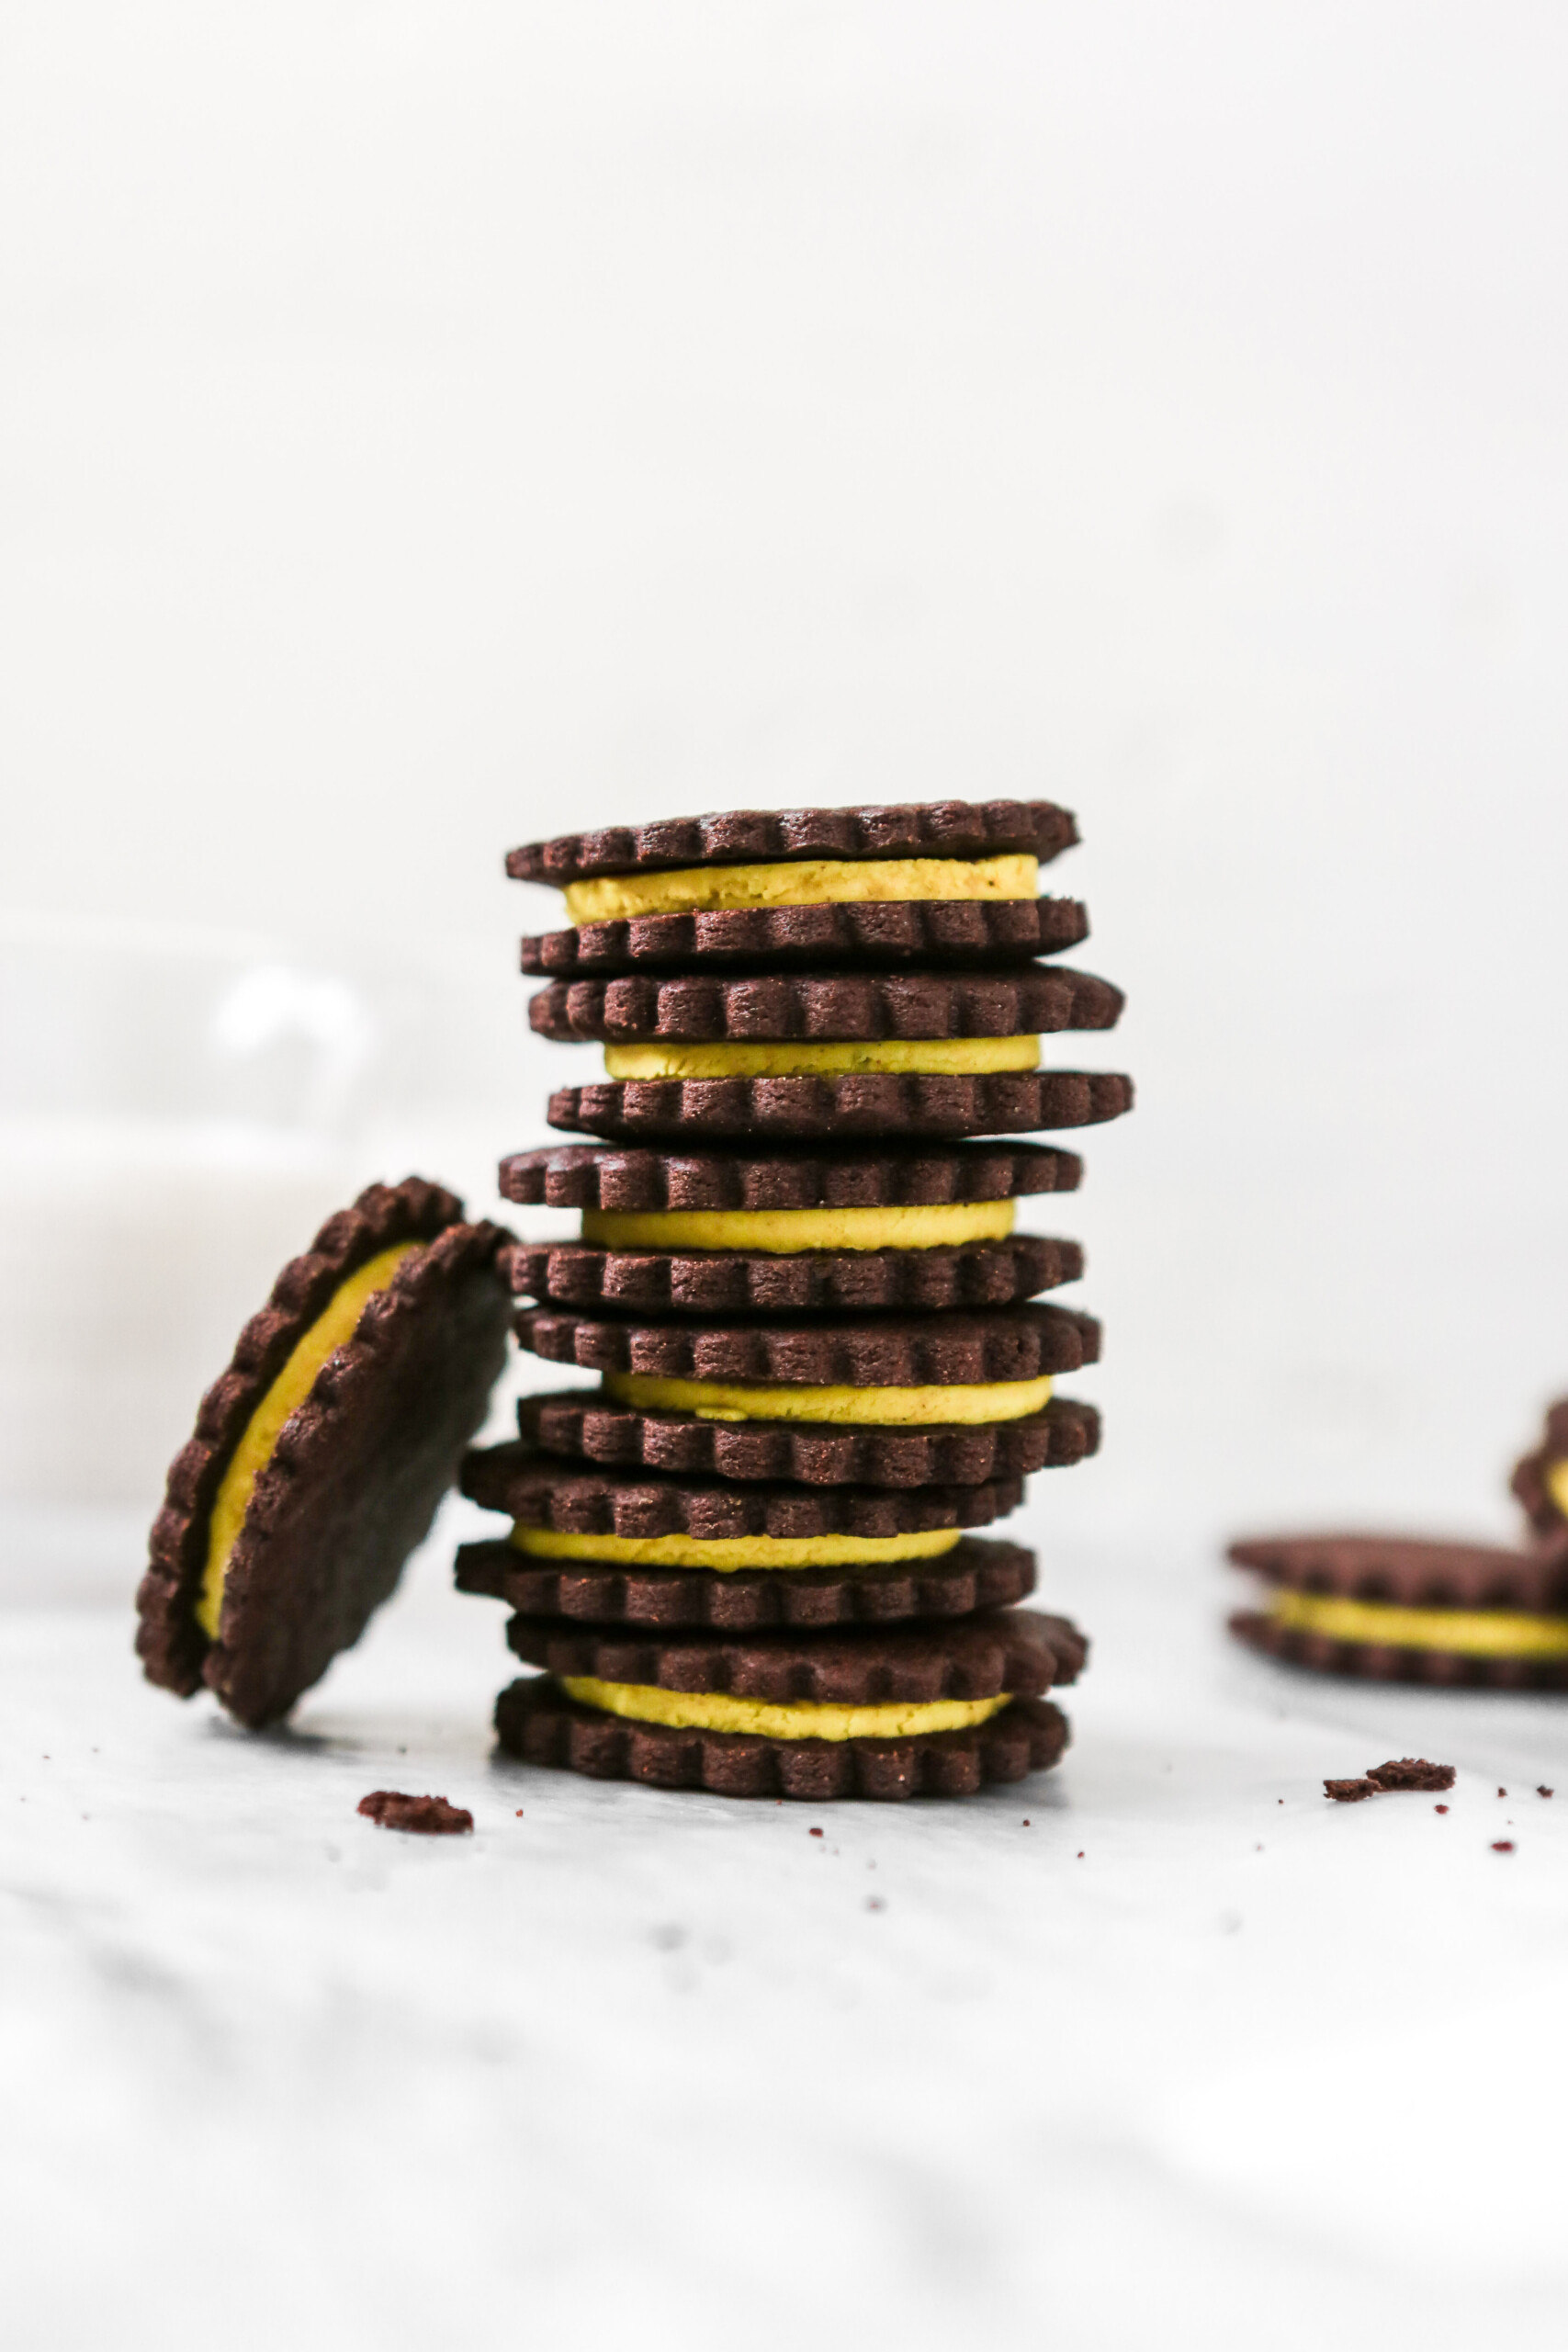 Photography of chocolate sandwich cookies with yellow frosting stacked on white marble.